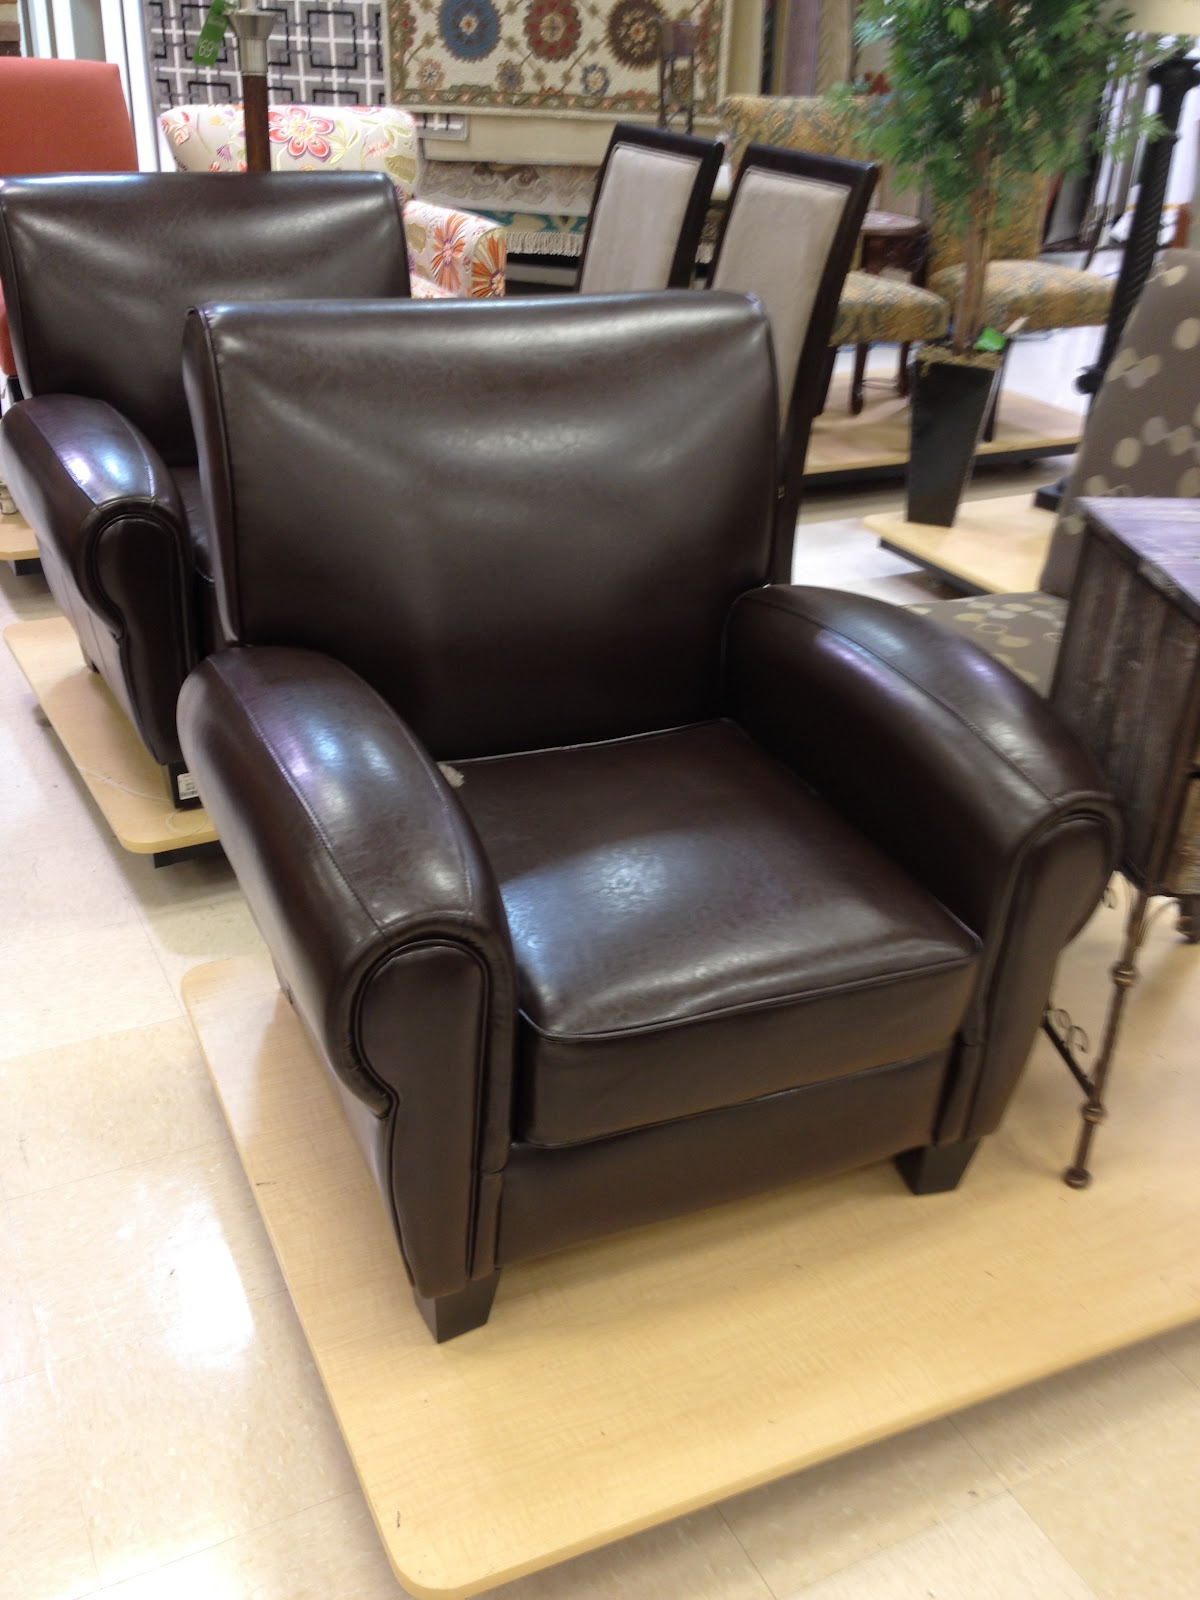 chairs at homegoods most comfortable desk chair ever engineering life and style fab finds friday i love